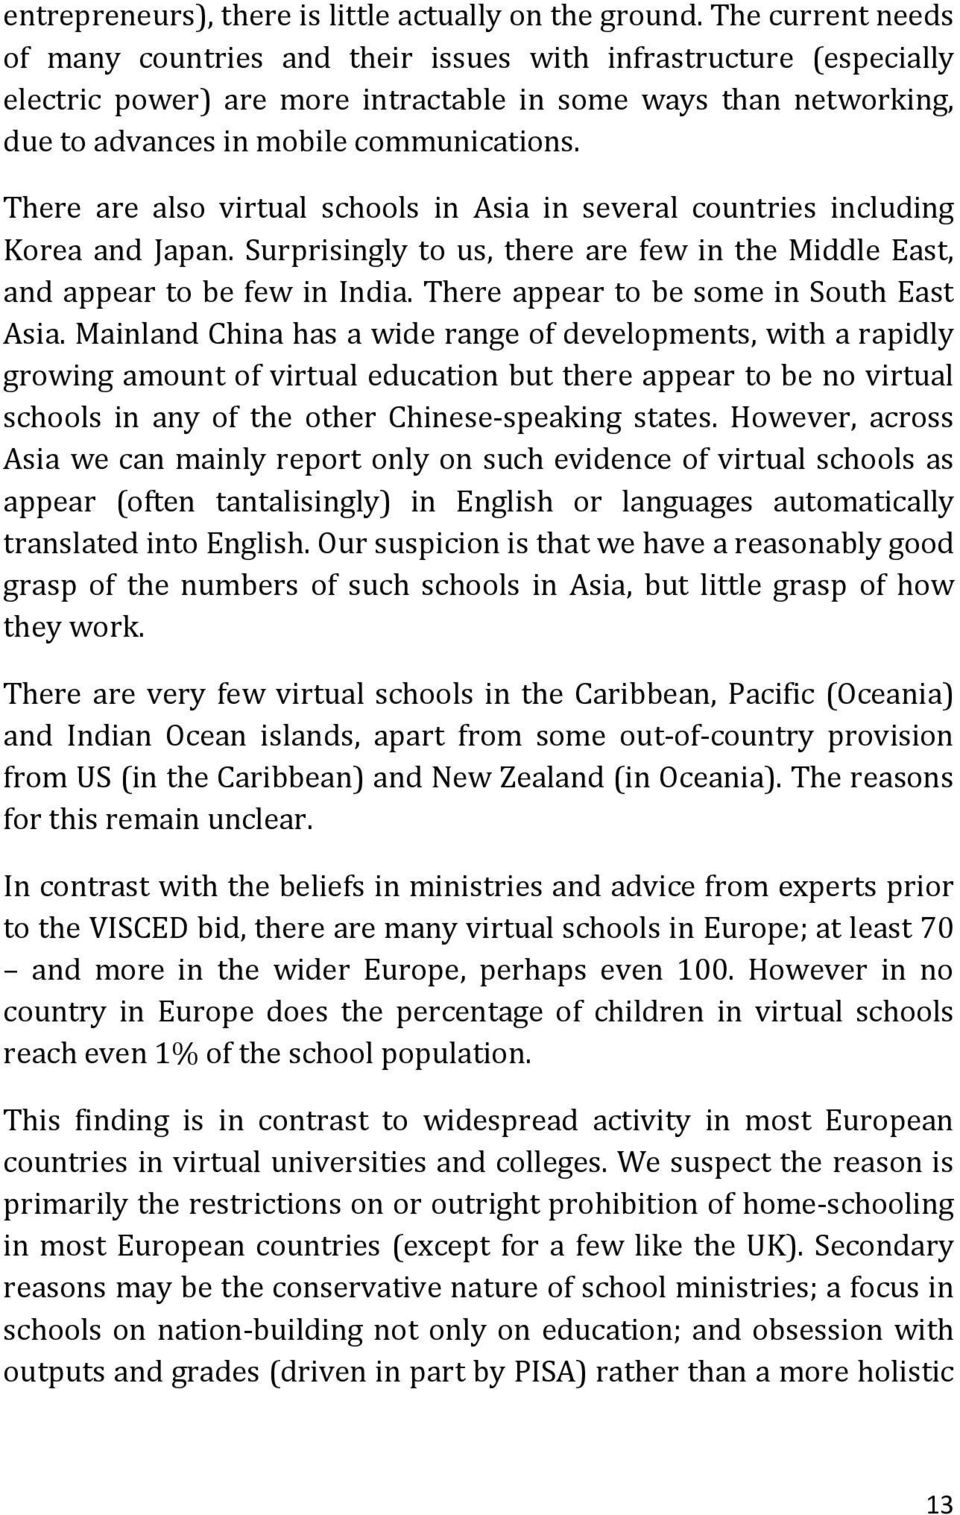 There are also virtual schools in Asia in several countries including Korea and Japan. Surprisingly to us, there are few in the Middle East, and appear to be few in India.